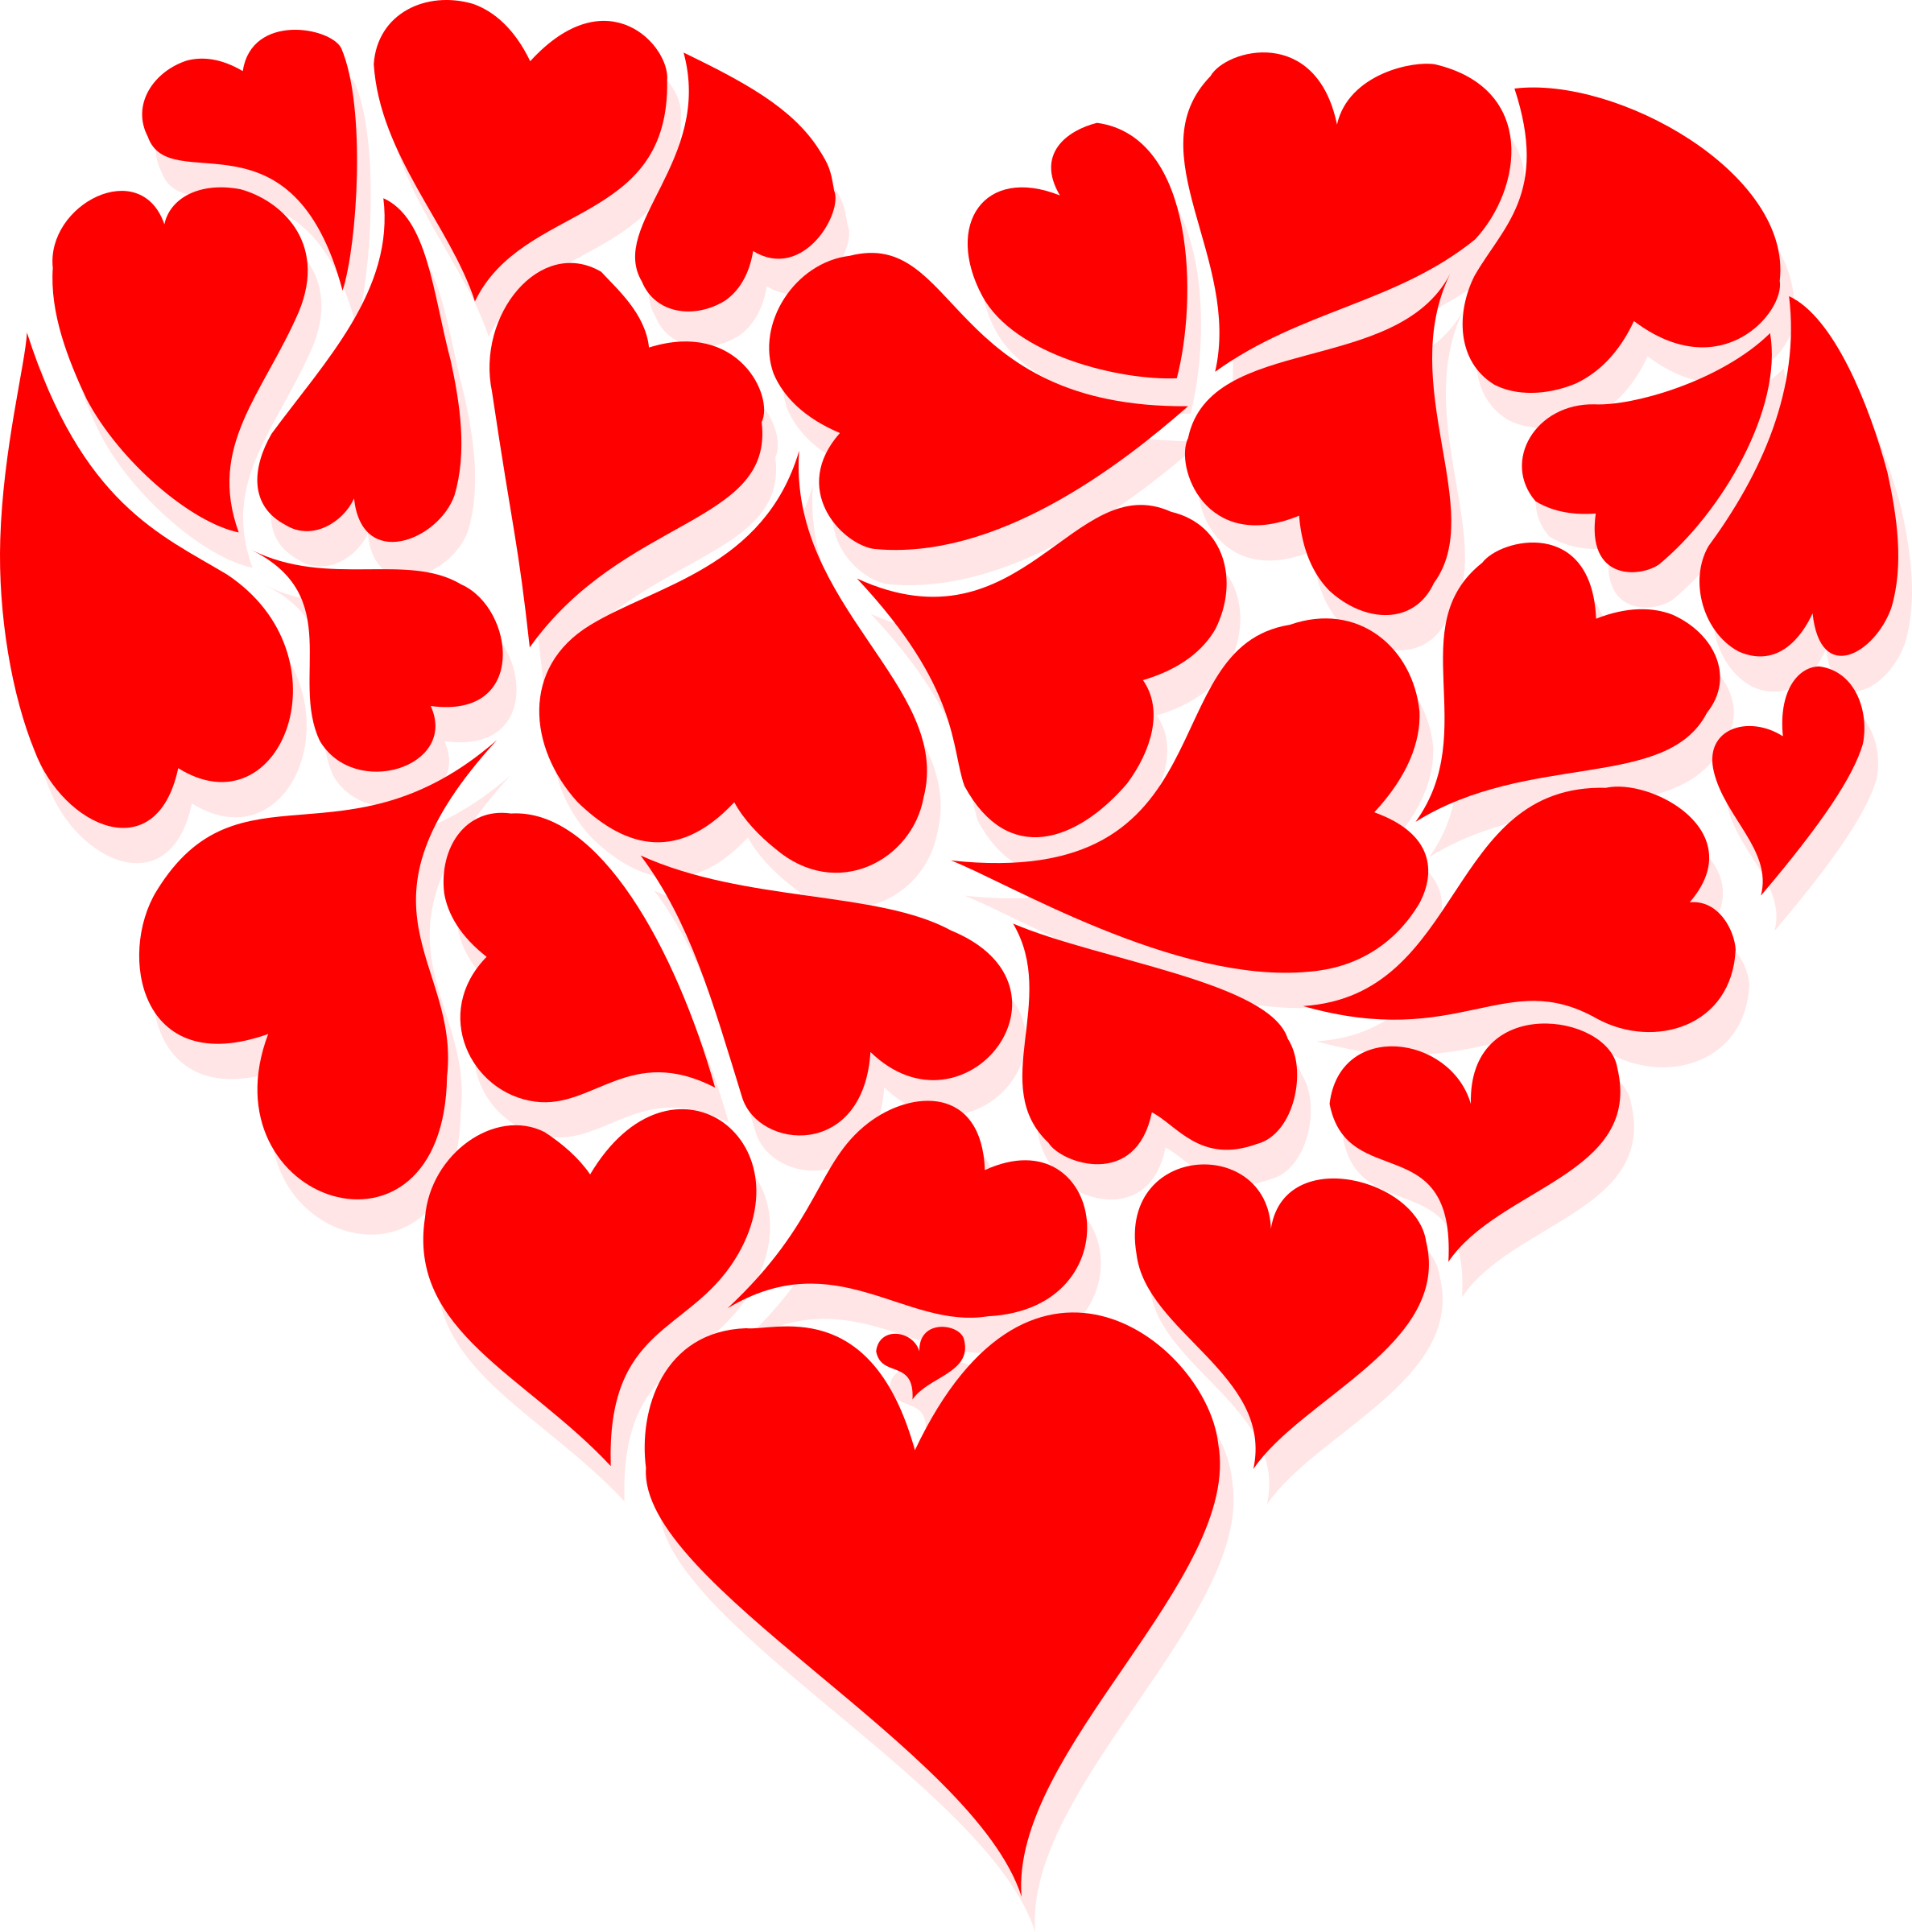 hearts-for-valentines-day.png&disposition=attachment 2,375×2,400 ...